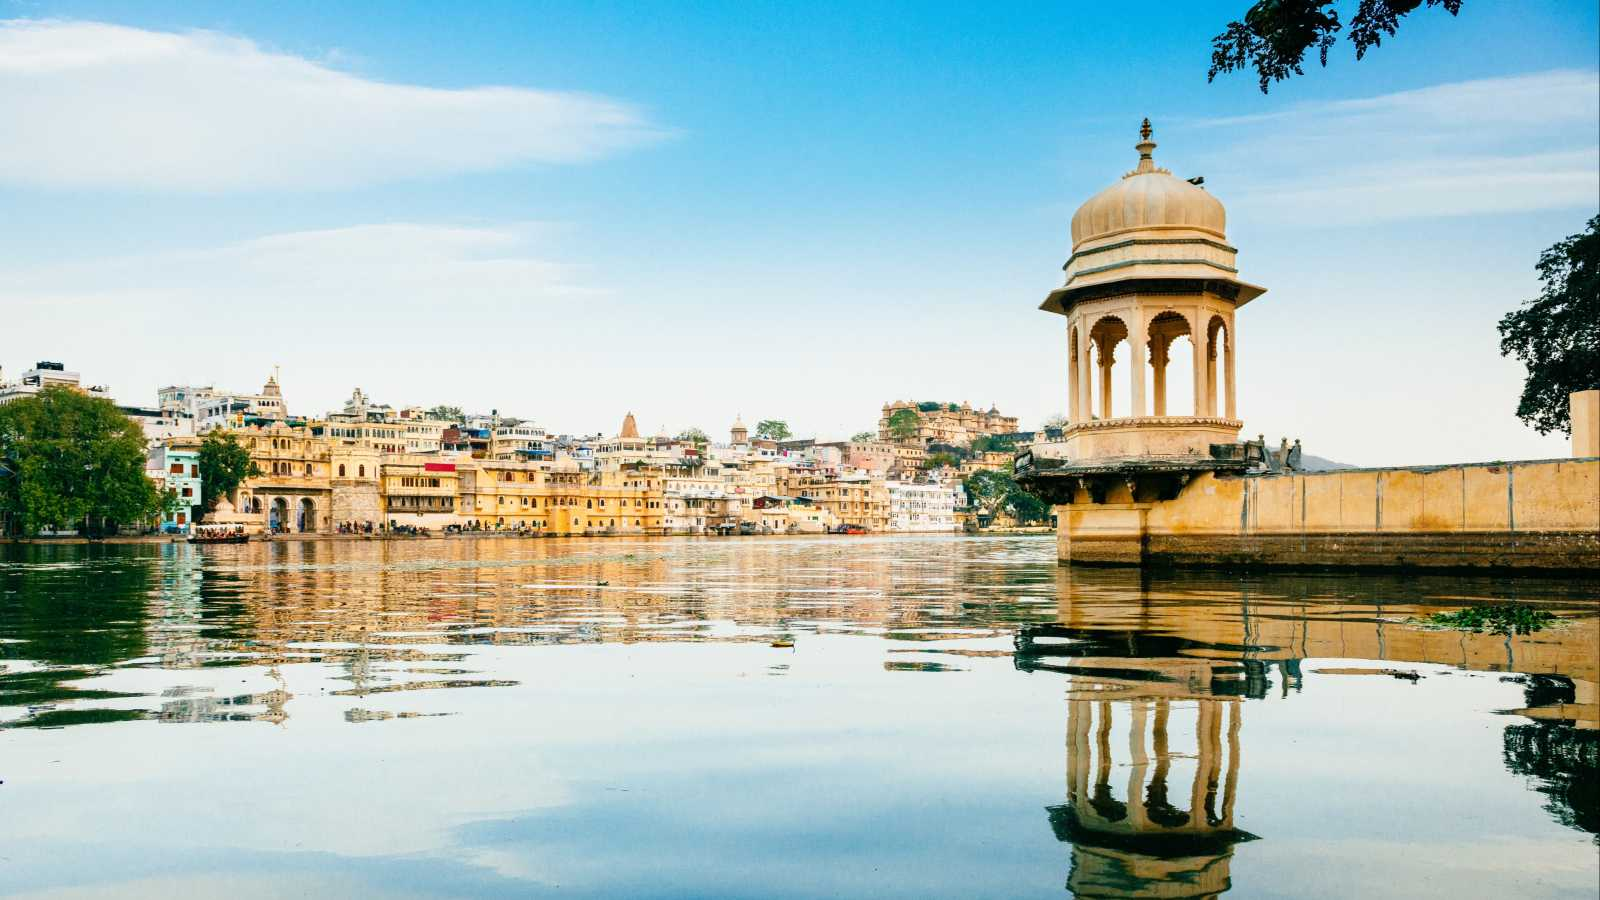 View_from_the_water_on_the_skyline_of_Udaipur